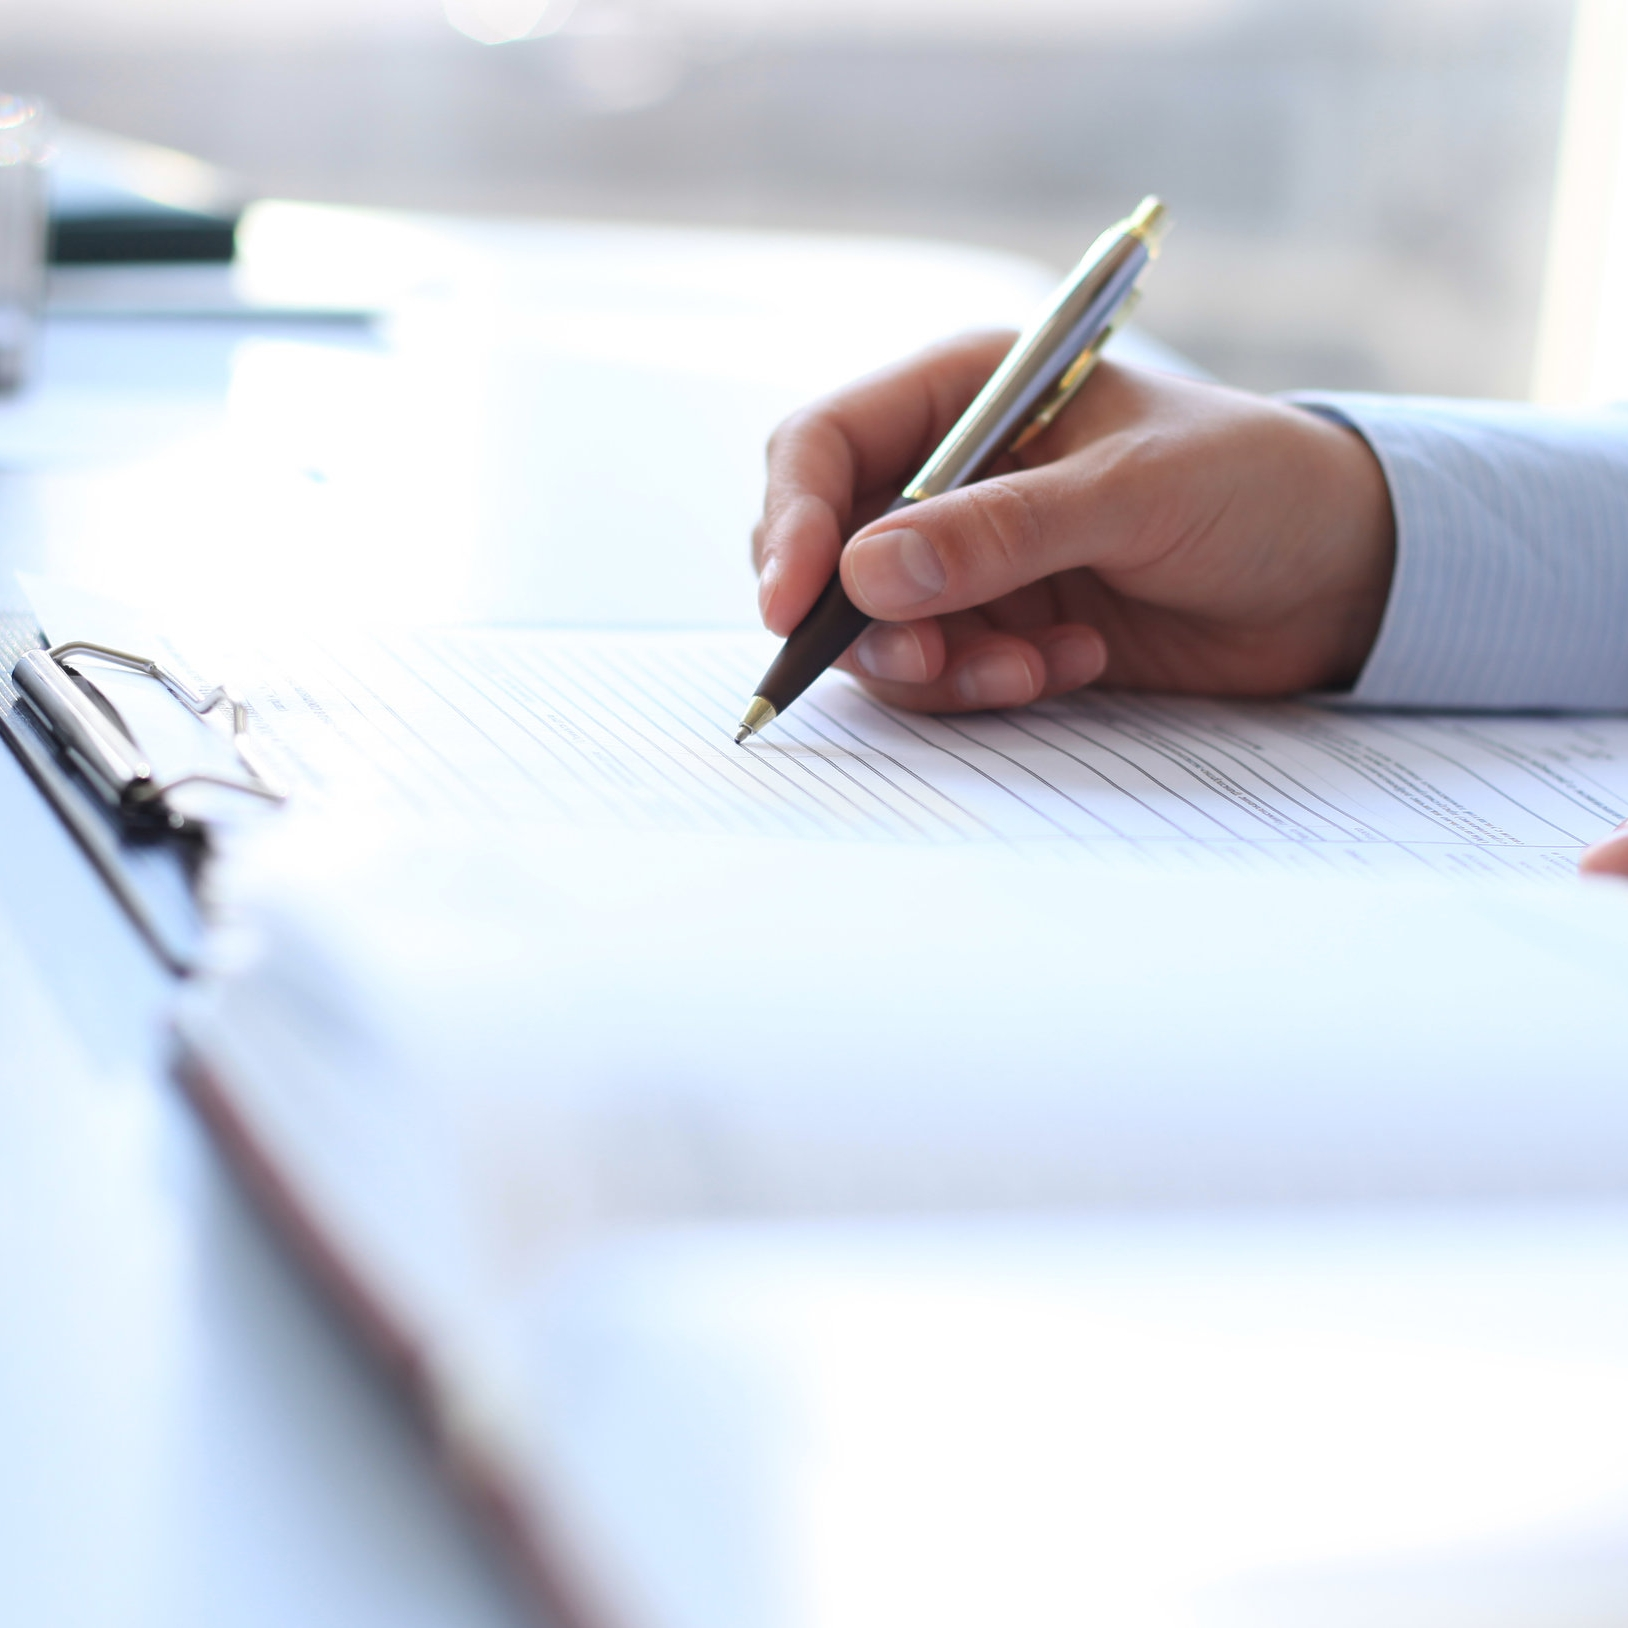 Bonds - Providing A Guarantee When You Need It The Most. Whether you're an individual seeking a particular type of bond, or run a business with a variety of bonding requirements, we can provide a surety program tailored to your needs.TYPES OF COVERAGE•Commercial Surety•Contract Surety•General Contractor